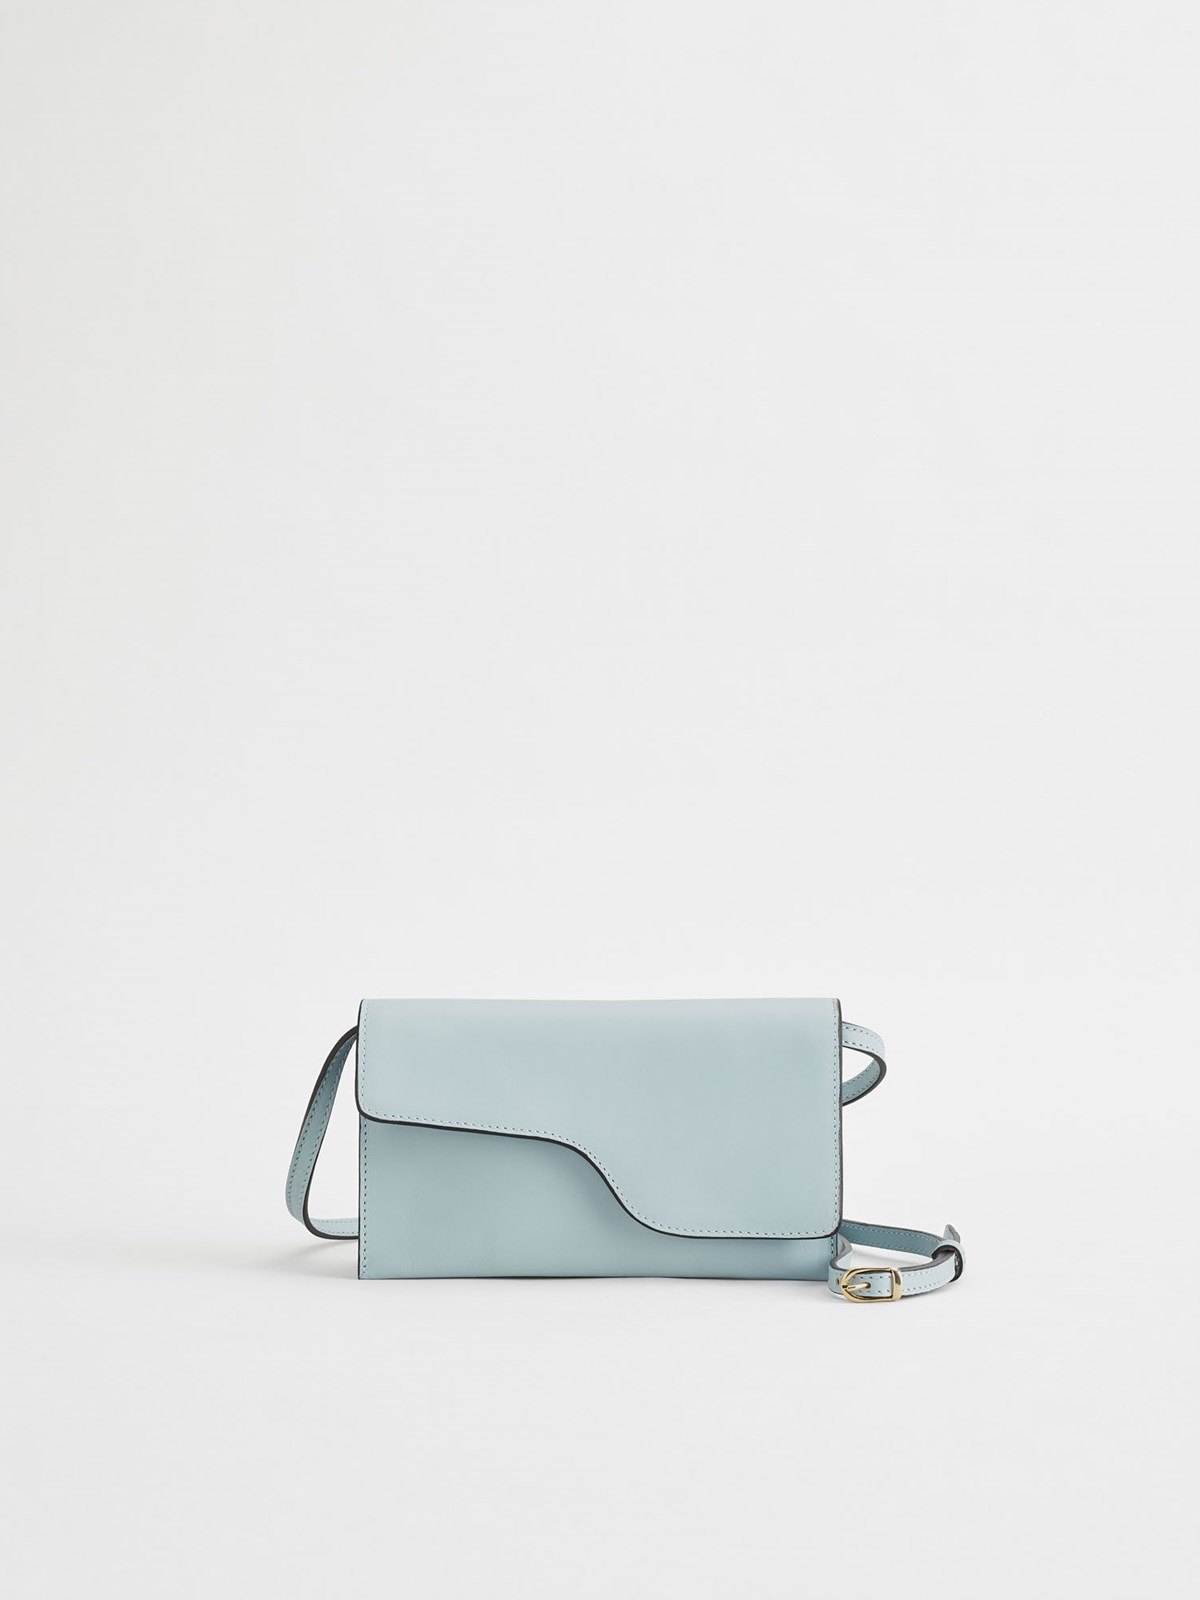 Ulignano Light Blue Baguette bag